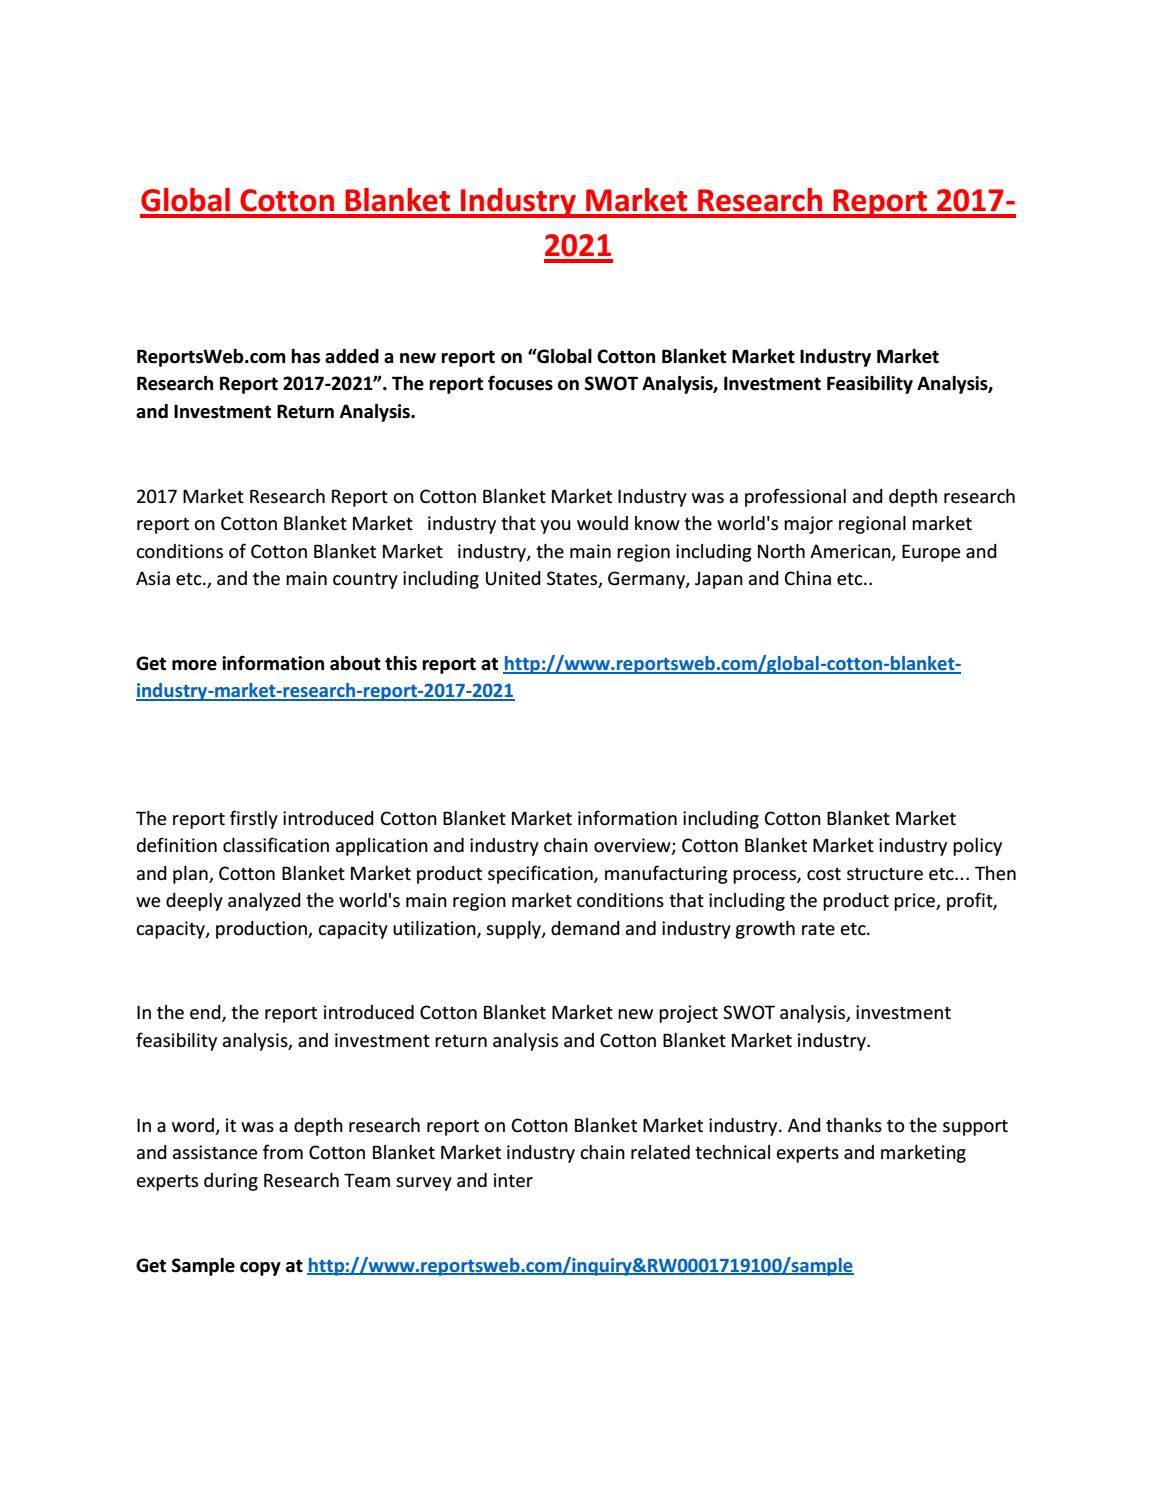 Demnd supply analysis of cotton industry